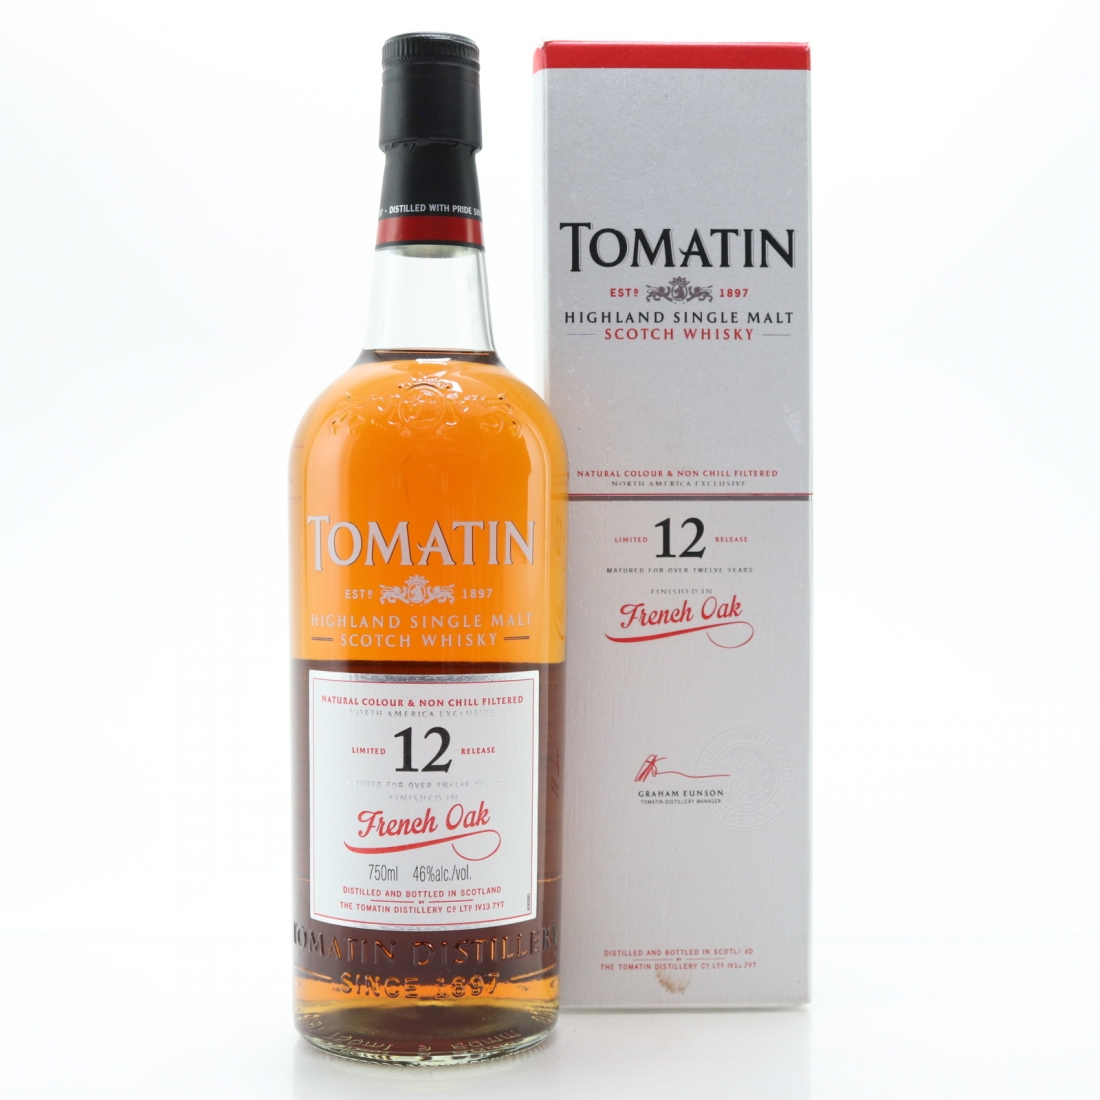 Tomatin 12 Year Old French Oak Finish 75cl / US Exclusive